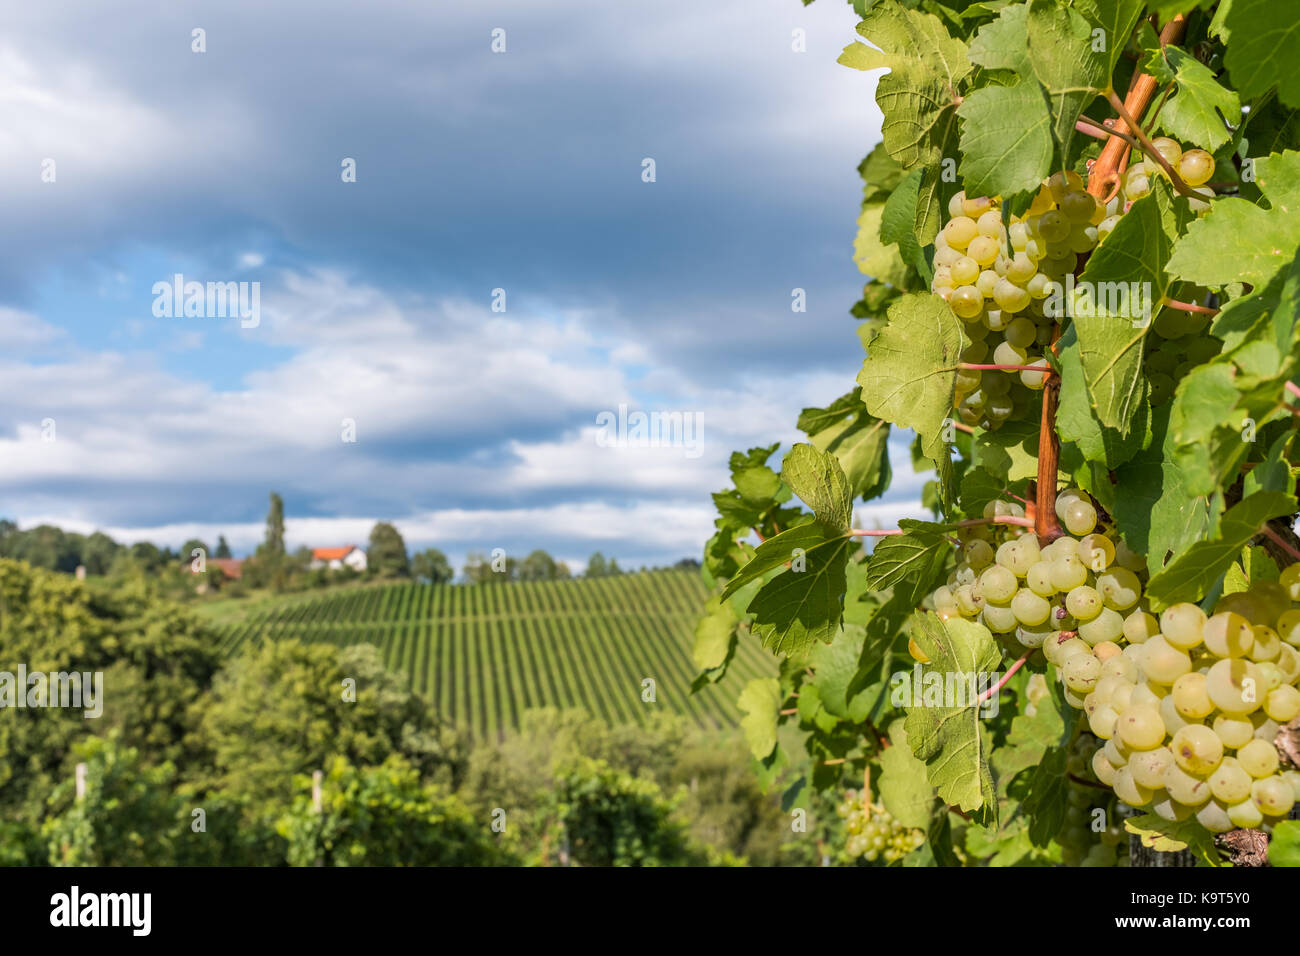 Ripe juicy green grapes for white vine in vineyard on south Styrian vine route in Austria - Stock Image